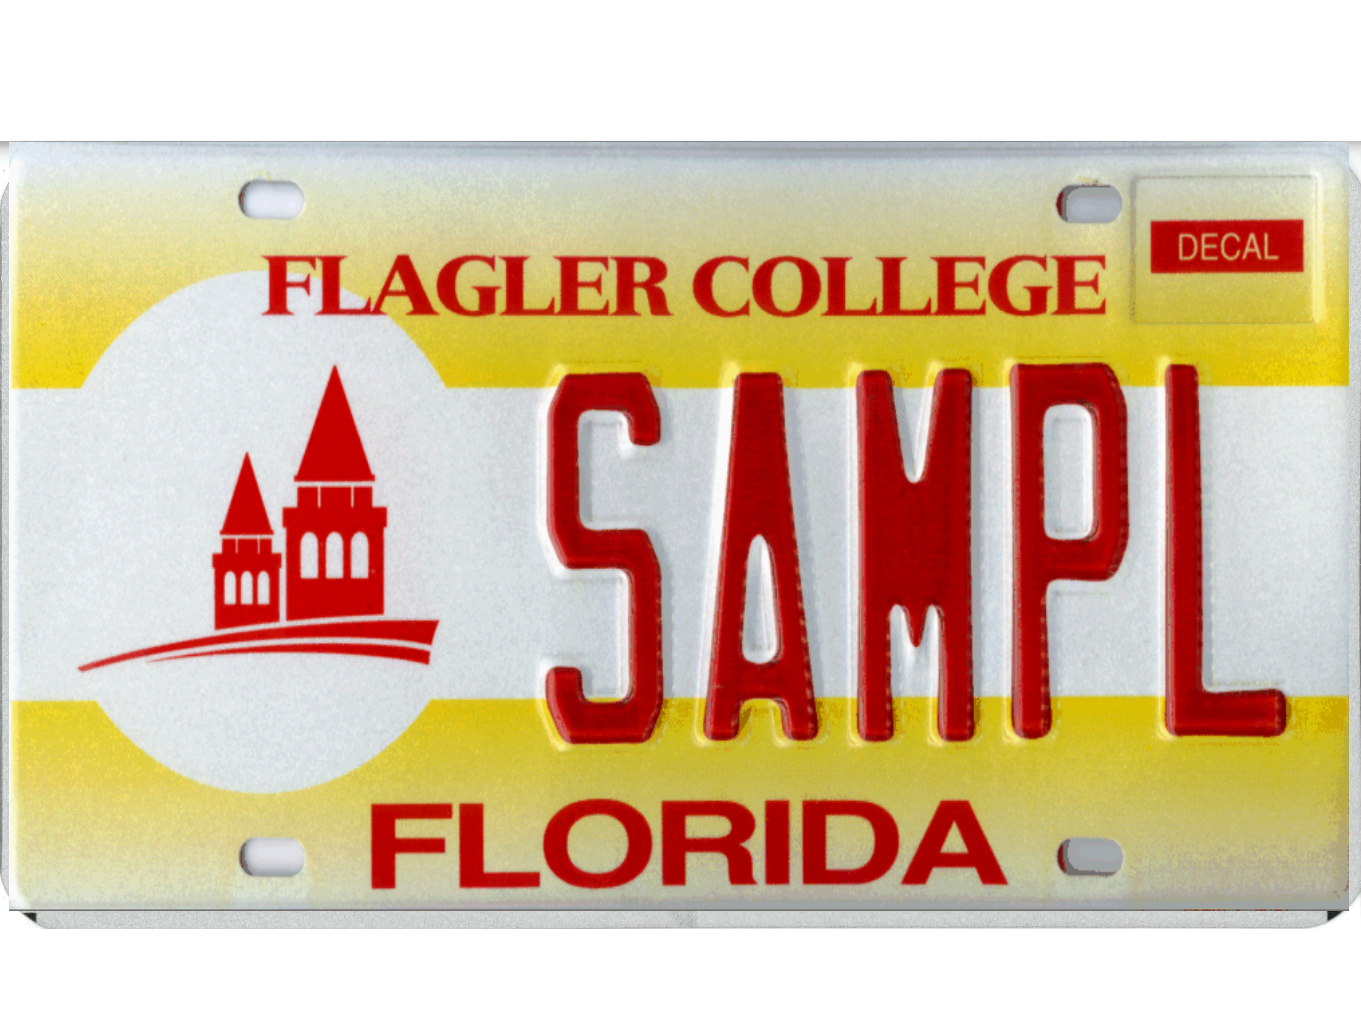 The Flagler College license plate.